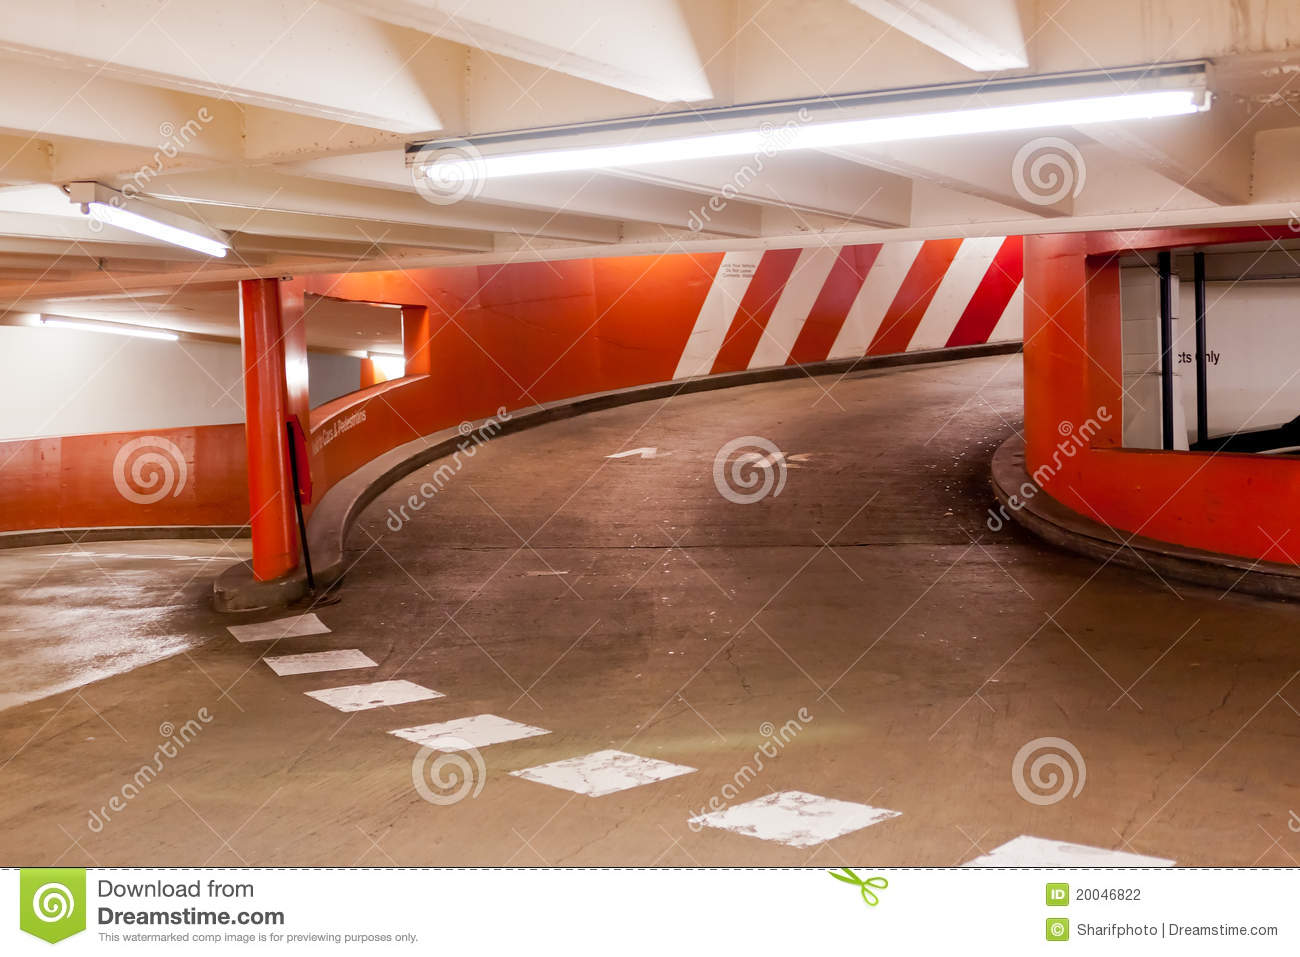 Underground Parking Exit Ramp In Parking Garage Stock Photo Image Of Parking